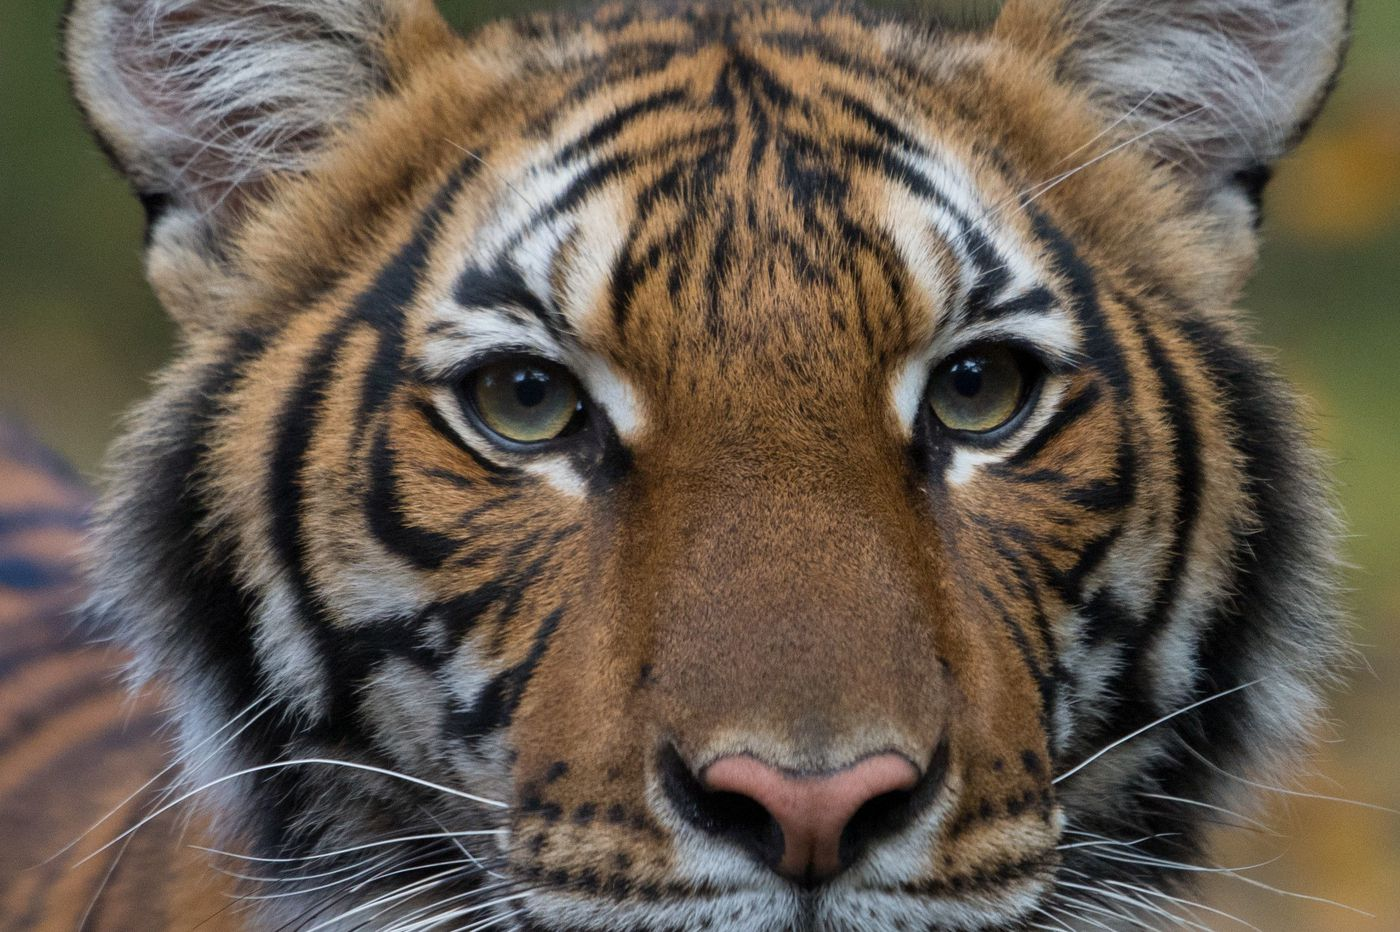 They said pets couldn't get the coronavirus, so how did a tiger test positive? Vets explain.